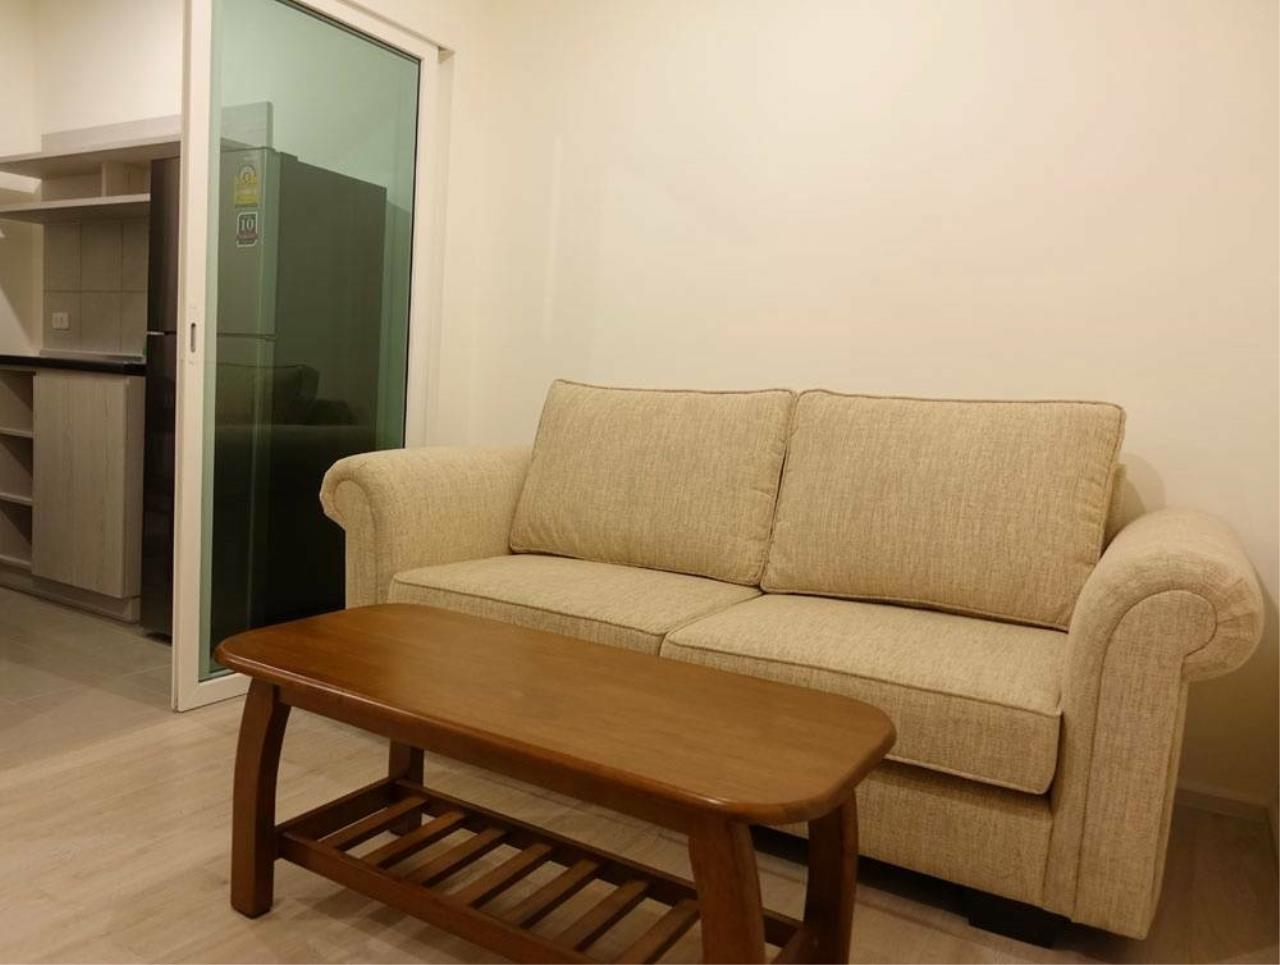 SALA ESTATE Agency's (FOR RENT)ASPIRE SATHORN - THAPRA – BTS TALAT PHLU, 31 SQM 1 BEDROOM 1 BATHROOM, FULLY FURNISHED 2